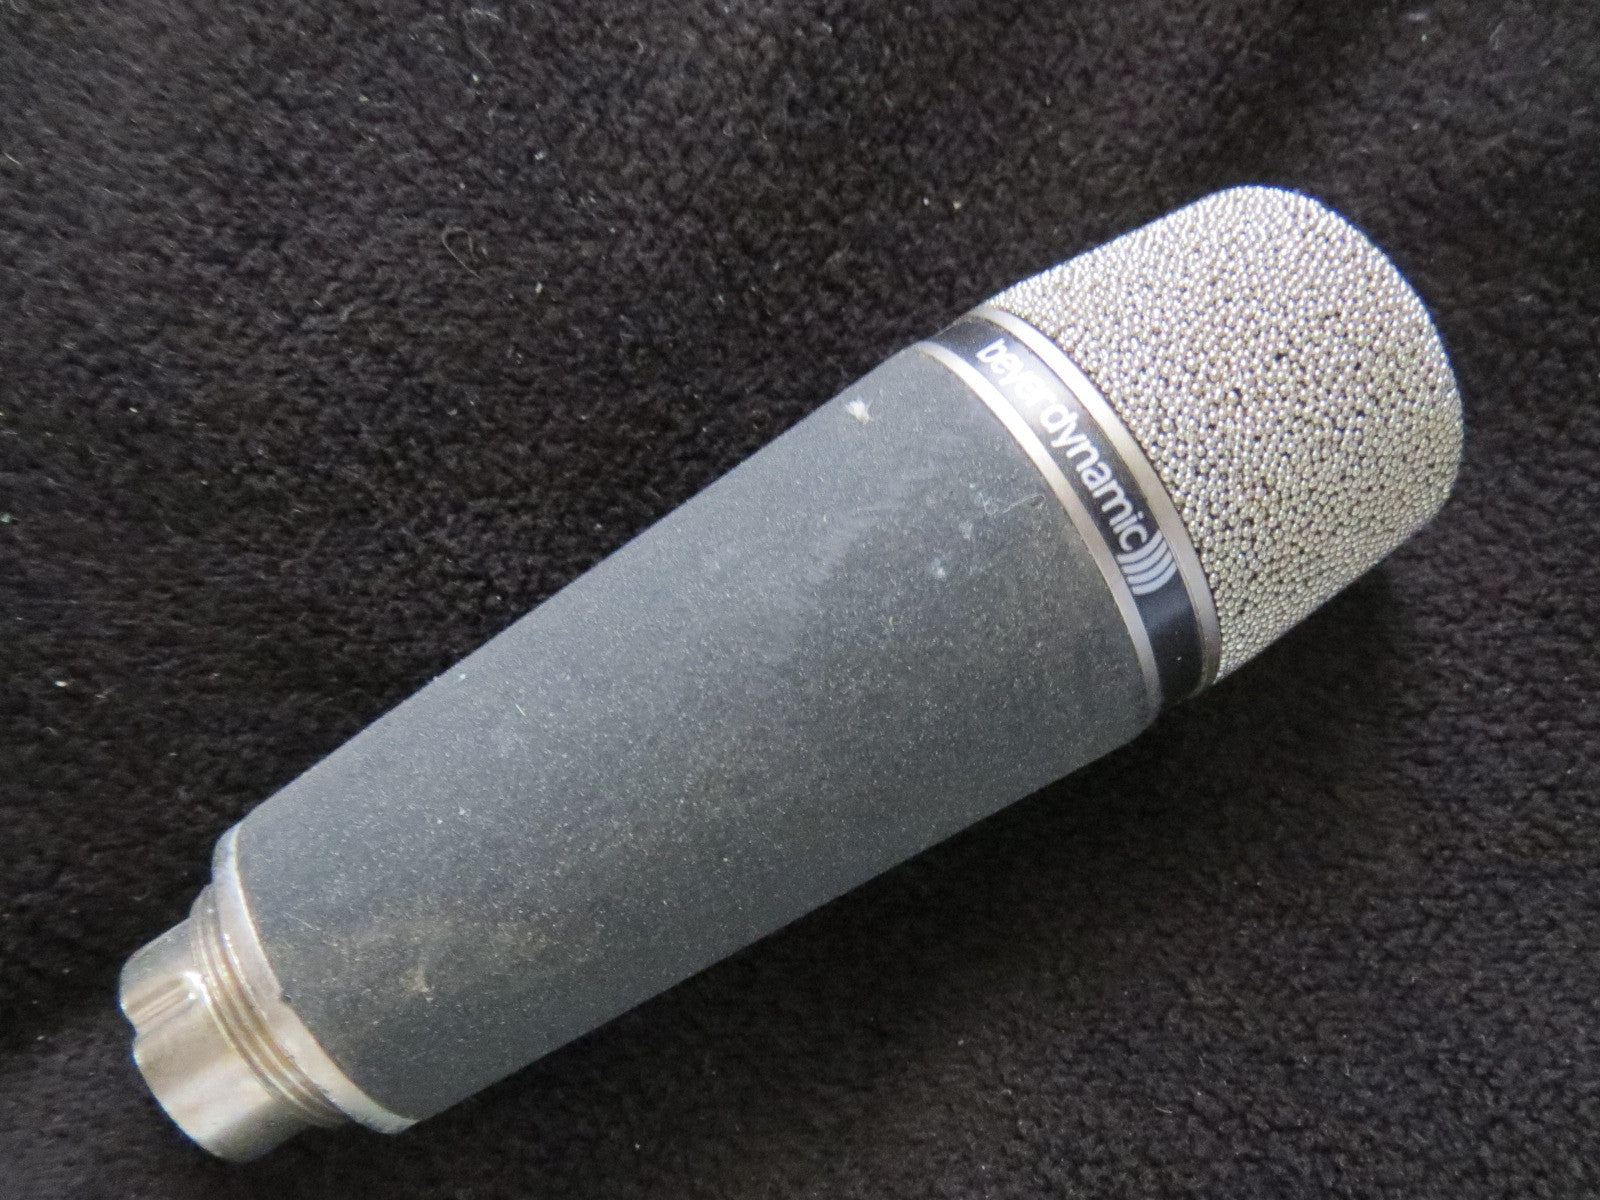 BEYER BEYERDYNAMIC M640 RARE VINTAGE CARDIOID DYNAMIC MICROPHONE WITH XLR CABLE